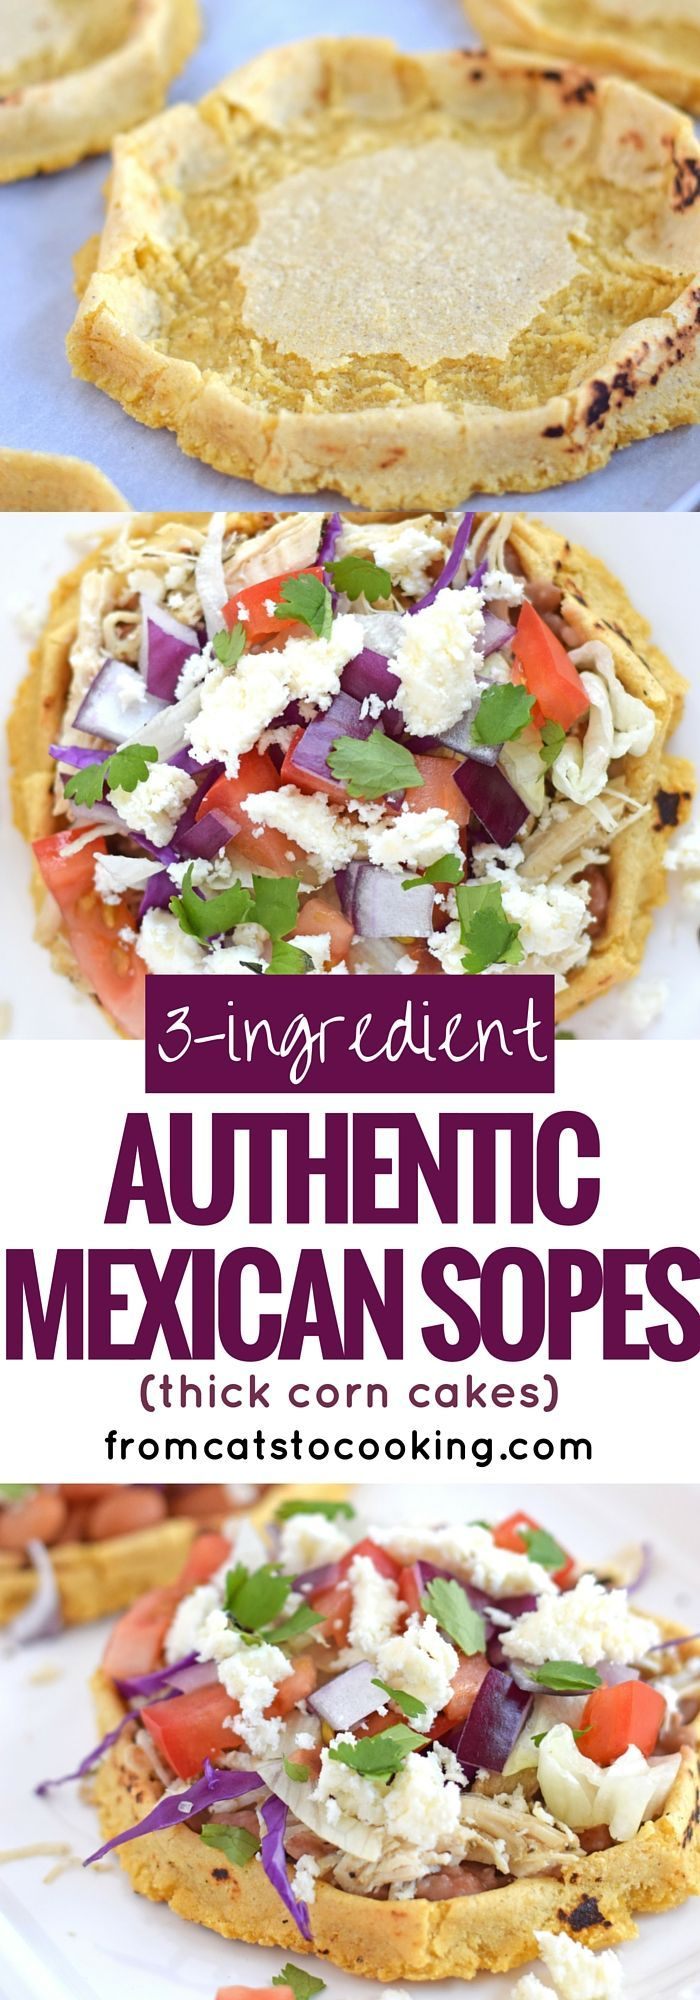 3-Ingredient Authentic Mexican Sopes are a thick corn cake that you can top with any ingredients your little tummy desires. I like to think of them as a thick corn tortilla boat because they're made exactly like a corn tortilla except the edges are pinched up to create a little well in the middle. They're gluten free, vegetarian, vegan and dairy free. They also make a great appetizer or have a couple for dinner. // fromcatstocooking.com